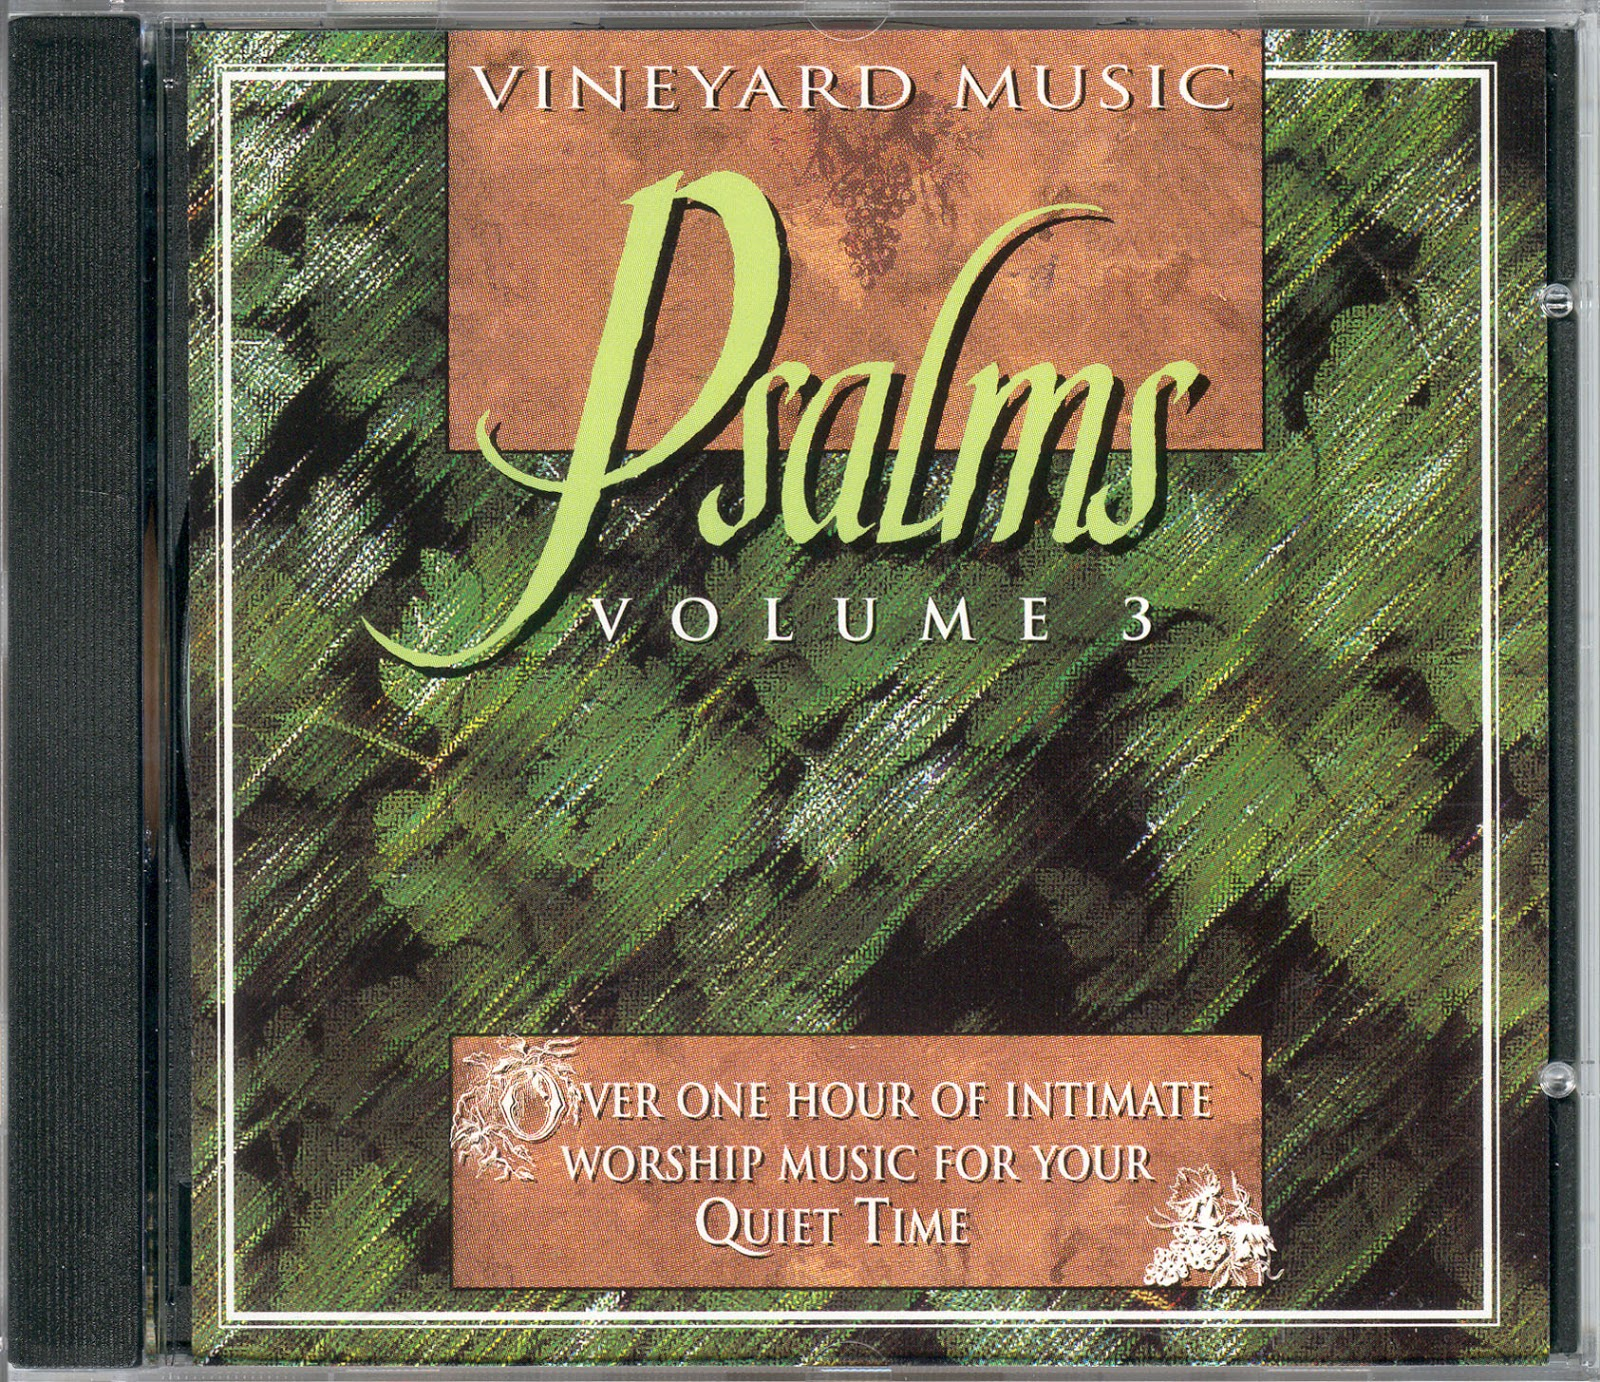 Vineyard Music-Psalms-Vol 3-